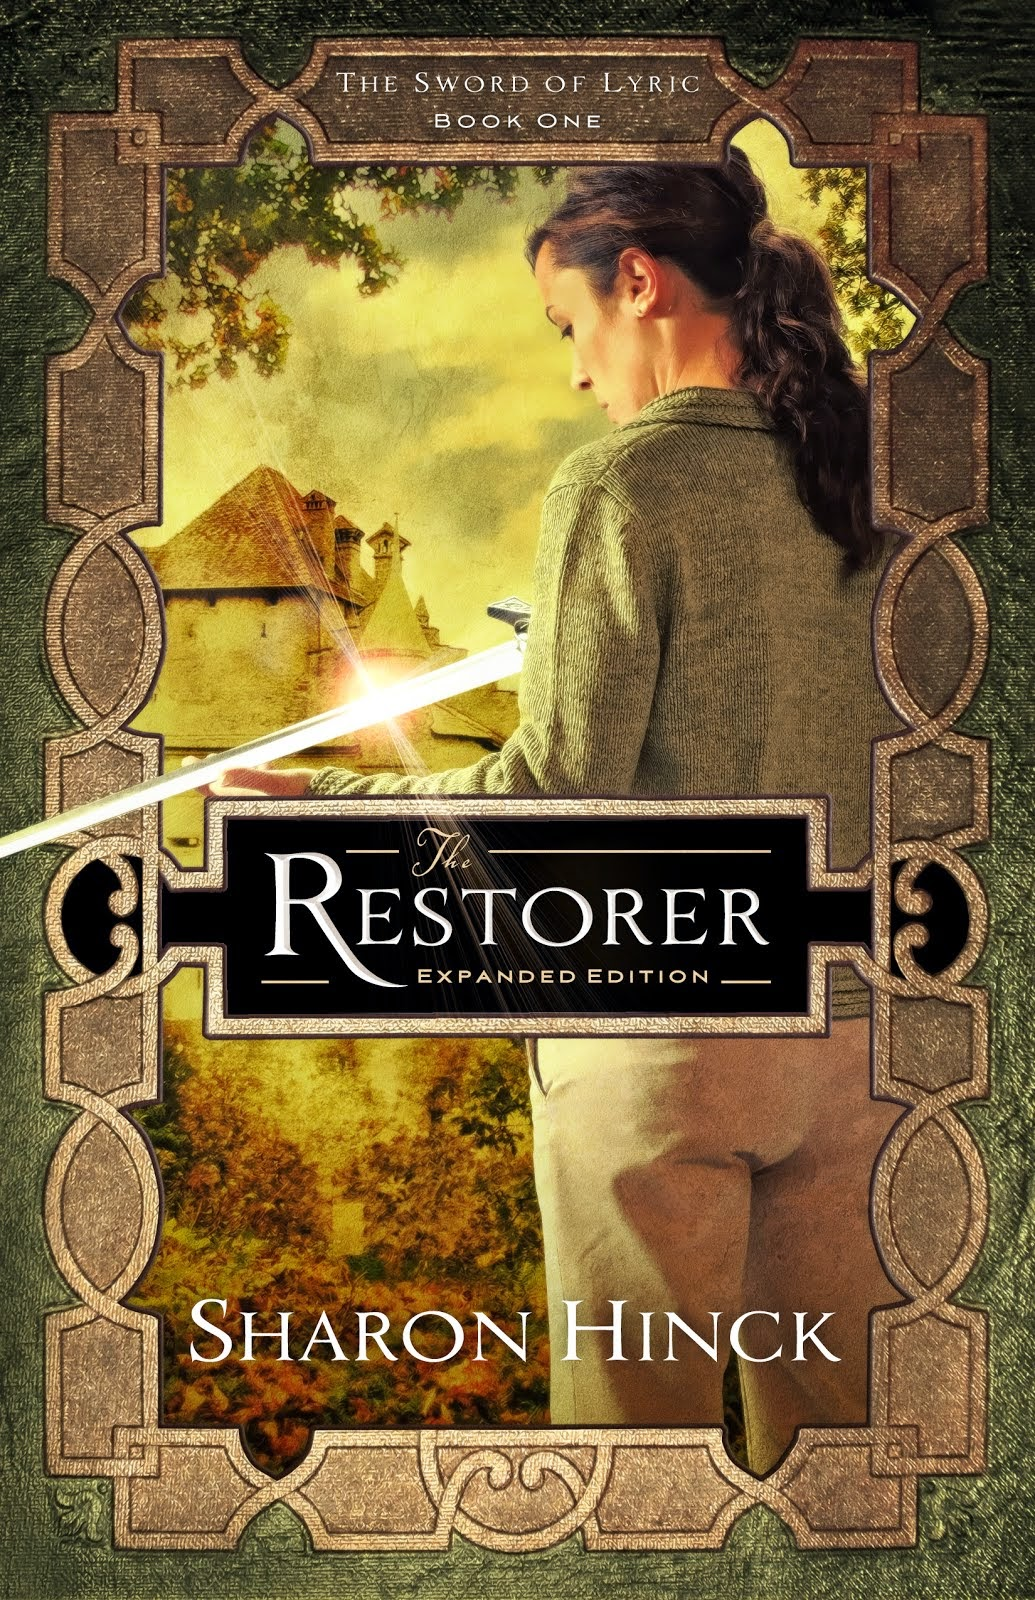 The Restorer